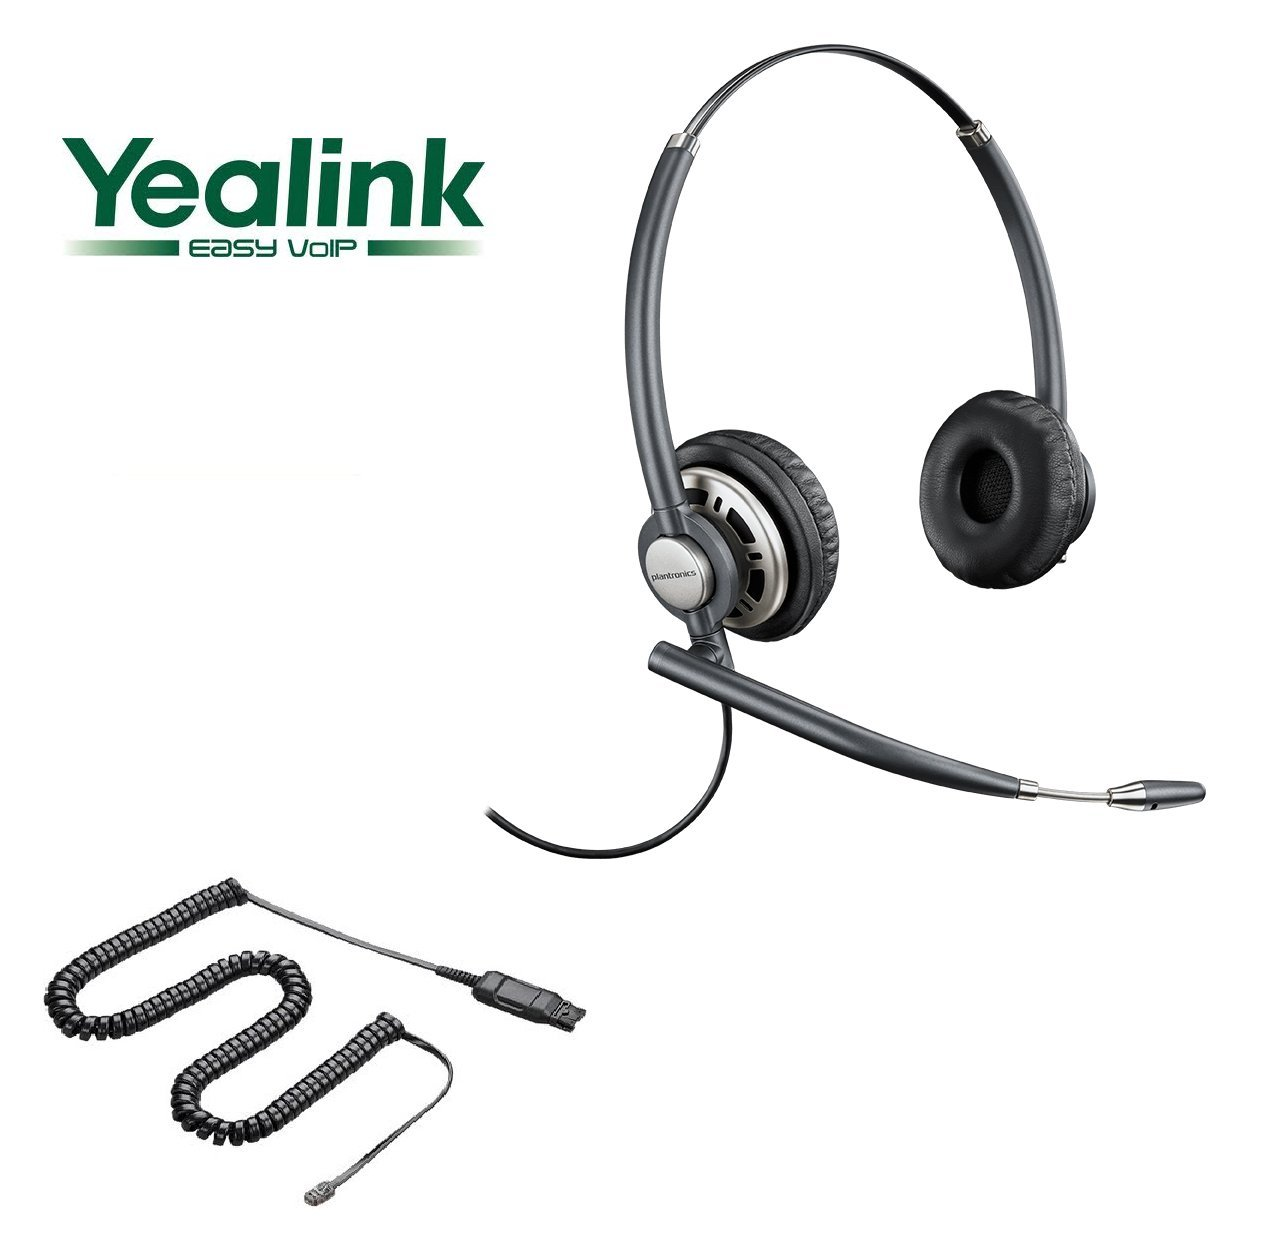 Plantronics HW720-YEA Yealink Certified Headset